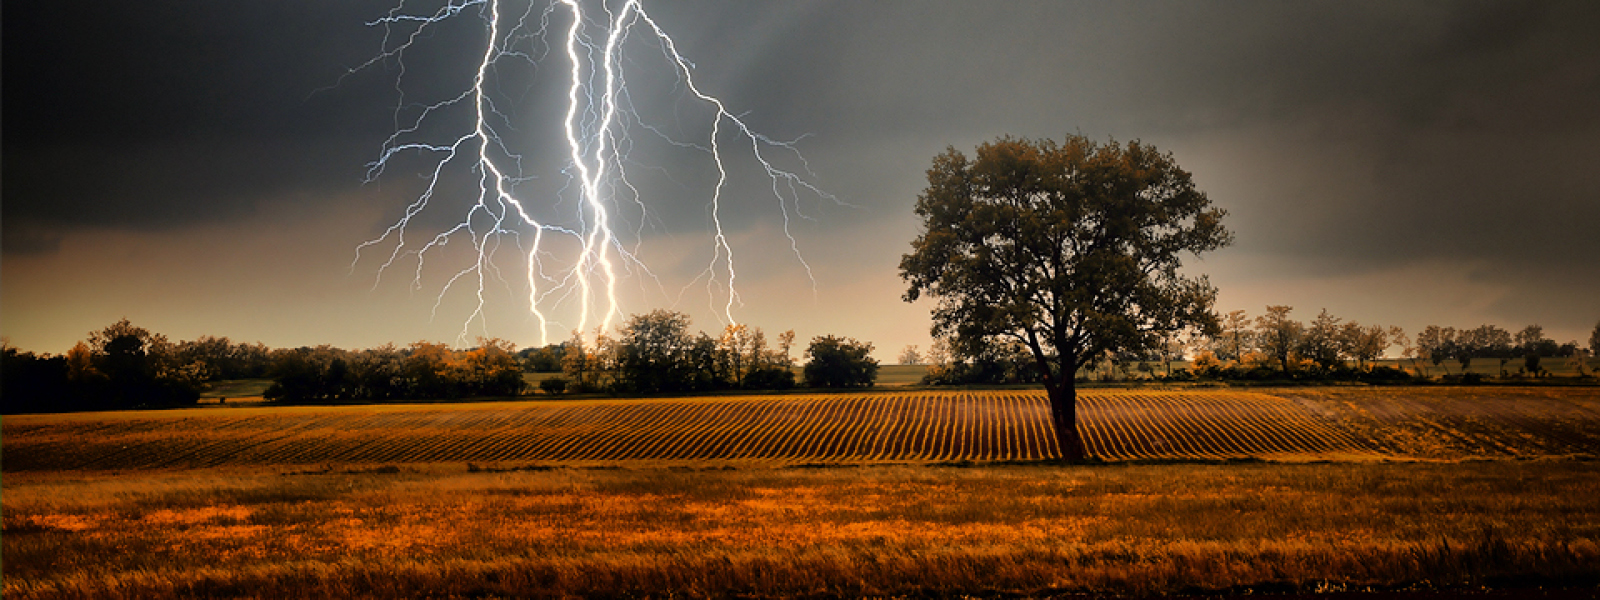 Lightening striking in field